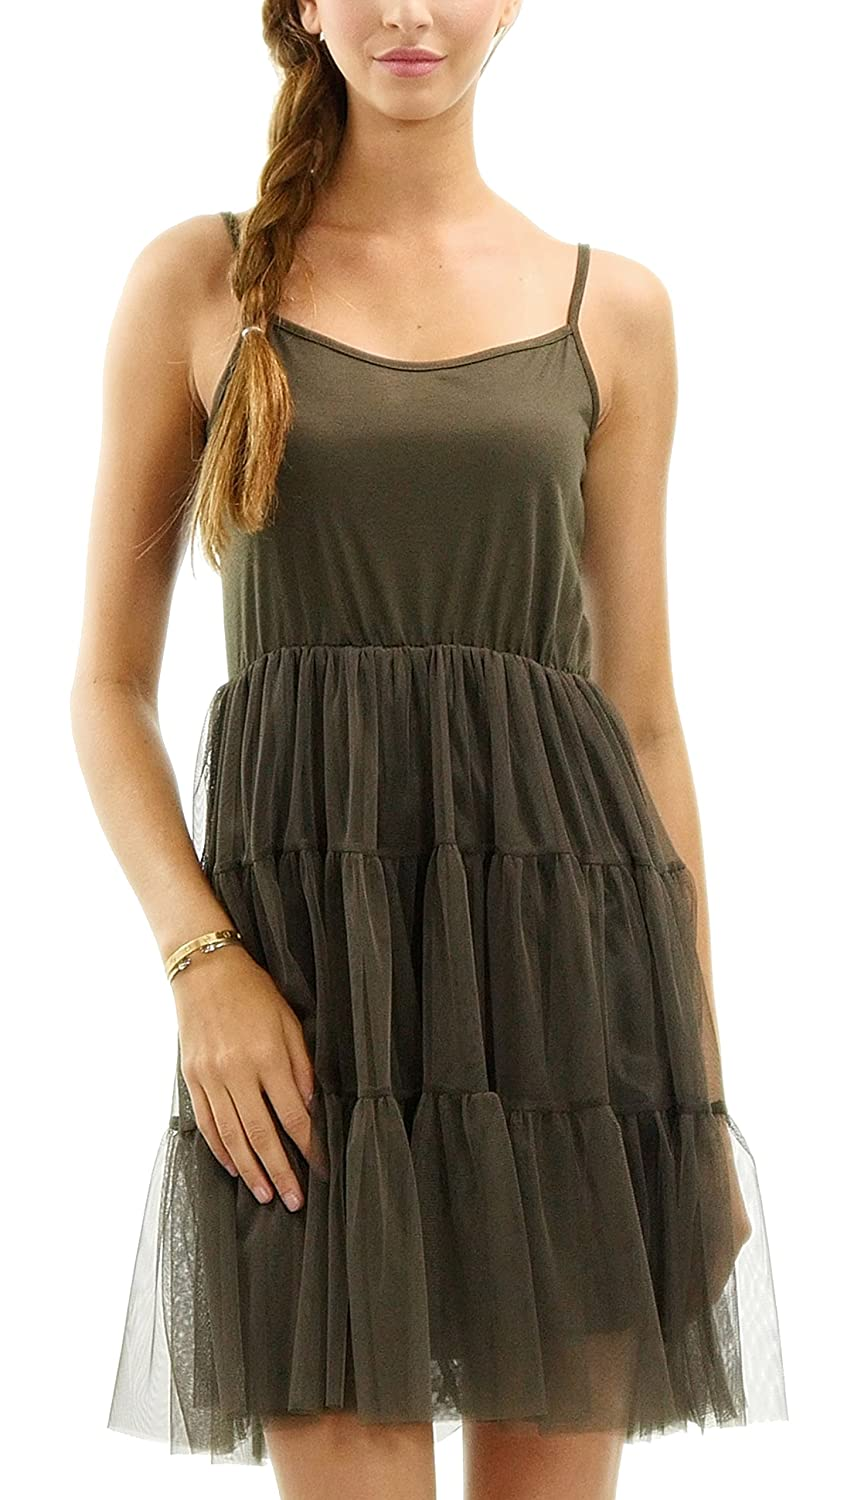 [Shop Lev] Women's Slip Dress with Tiered Mesh Skirt and Adjustable Straps